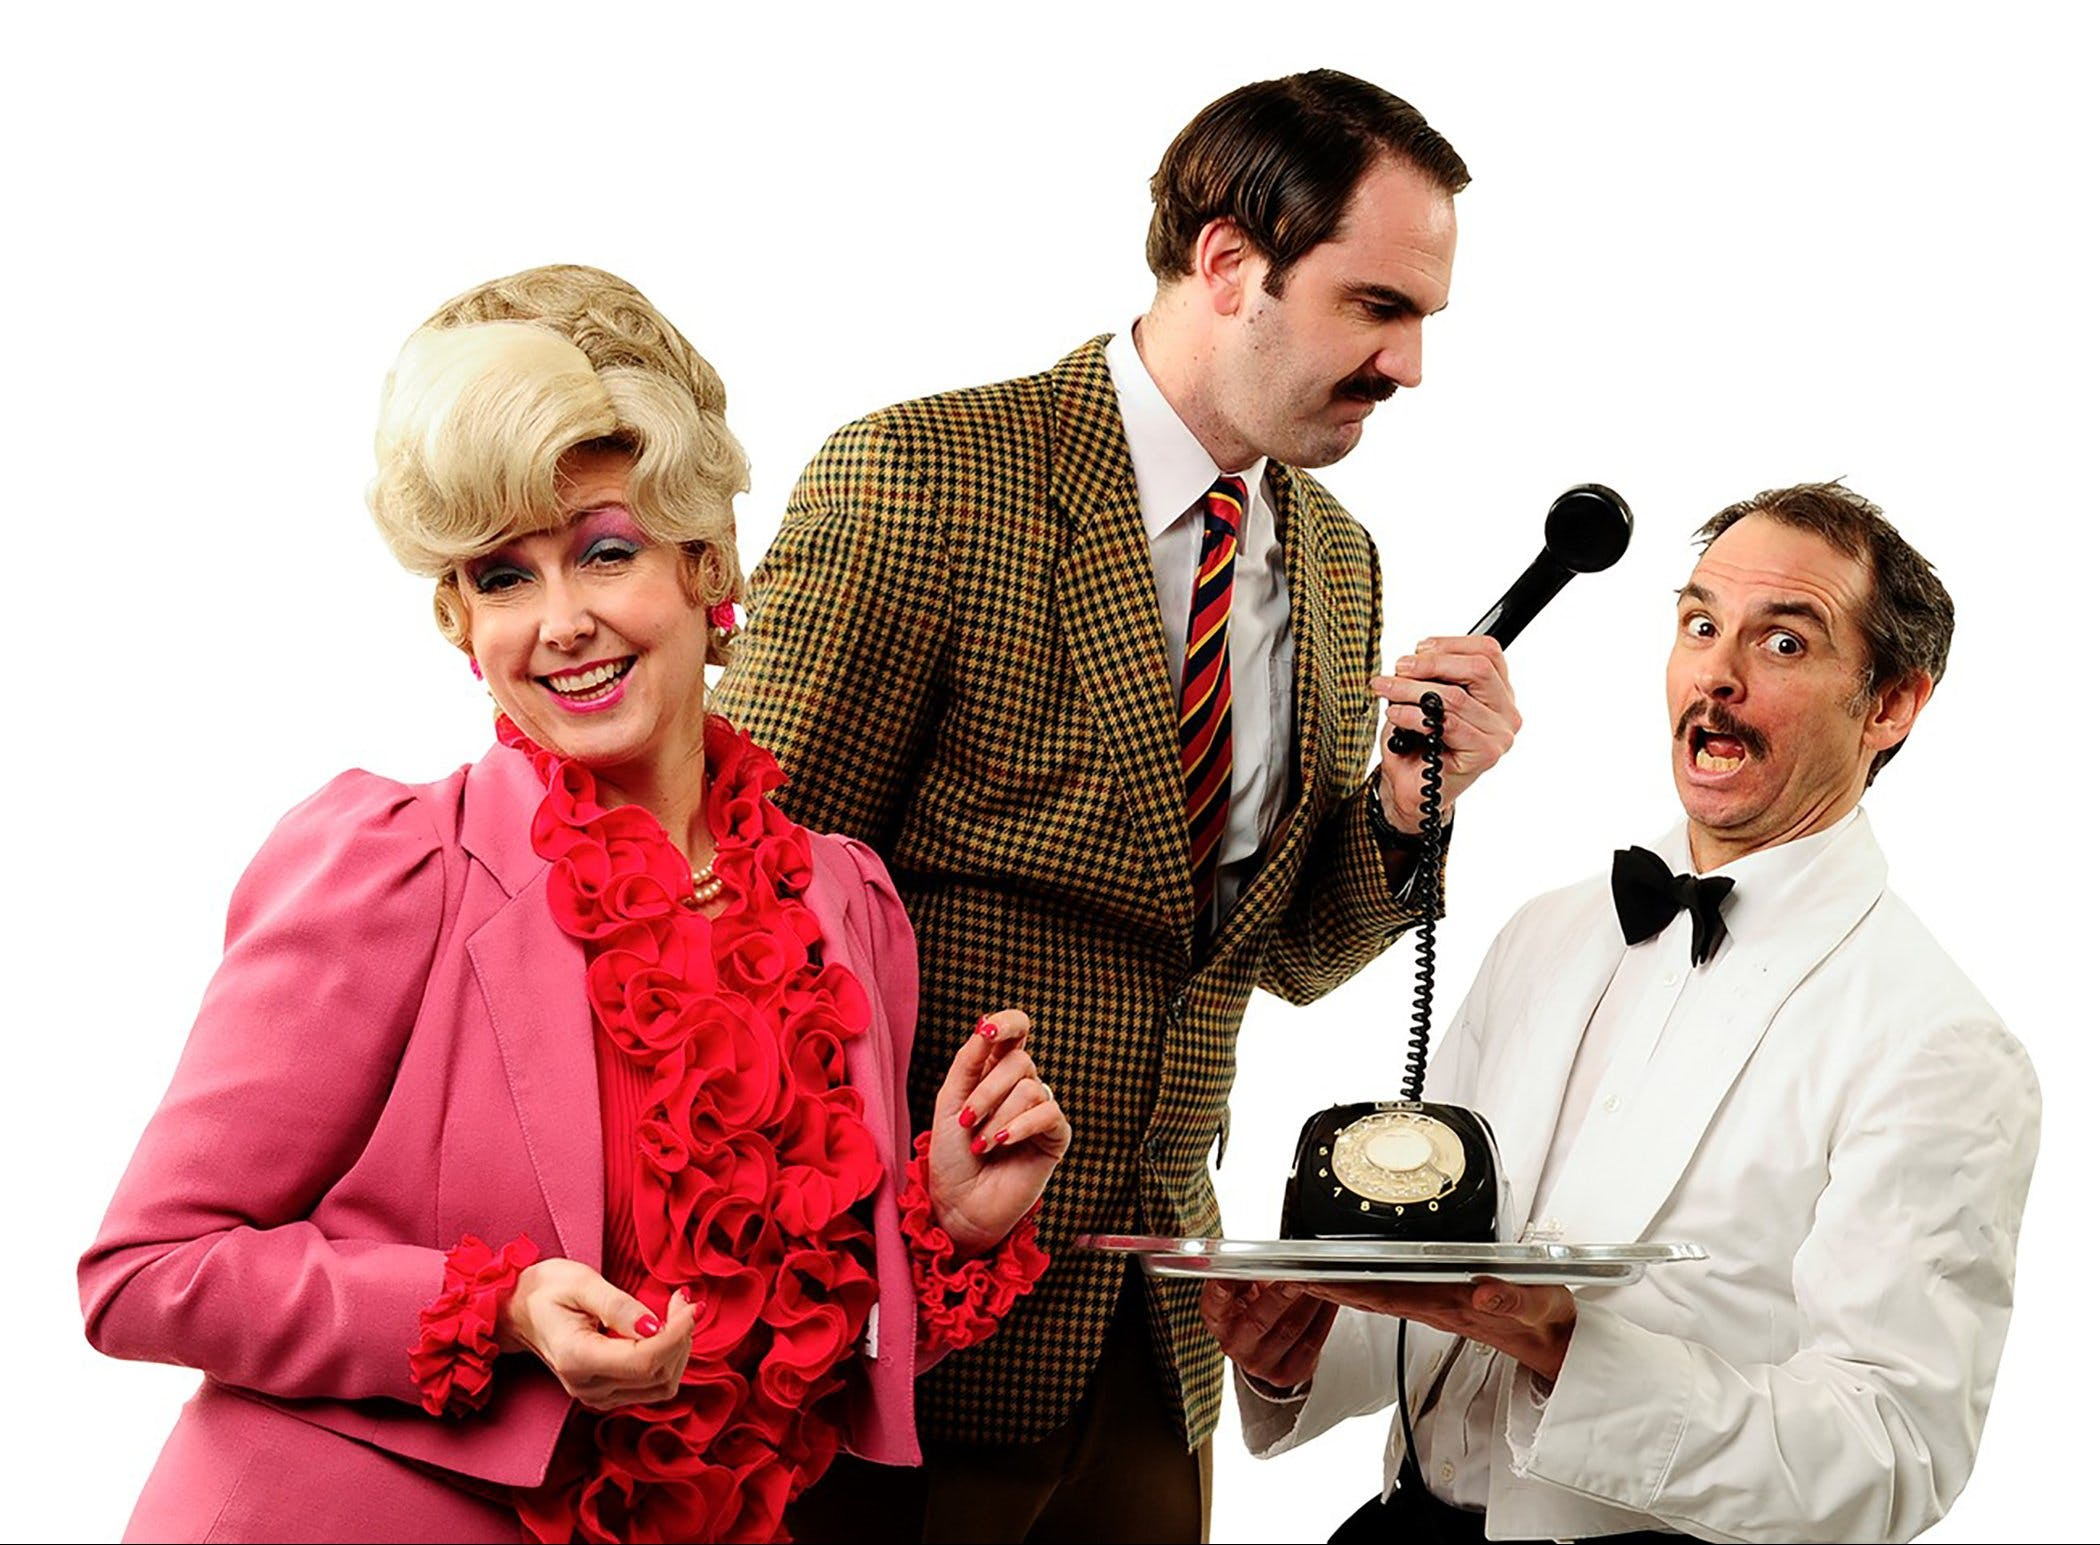 Faulty Towers - The Dining Experience at CountryPlace Hotel - Accommodation Resorts